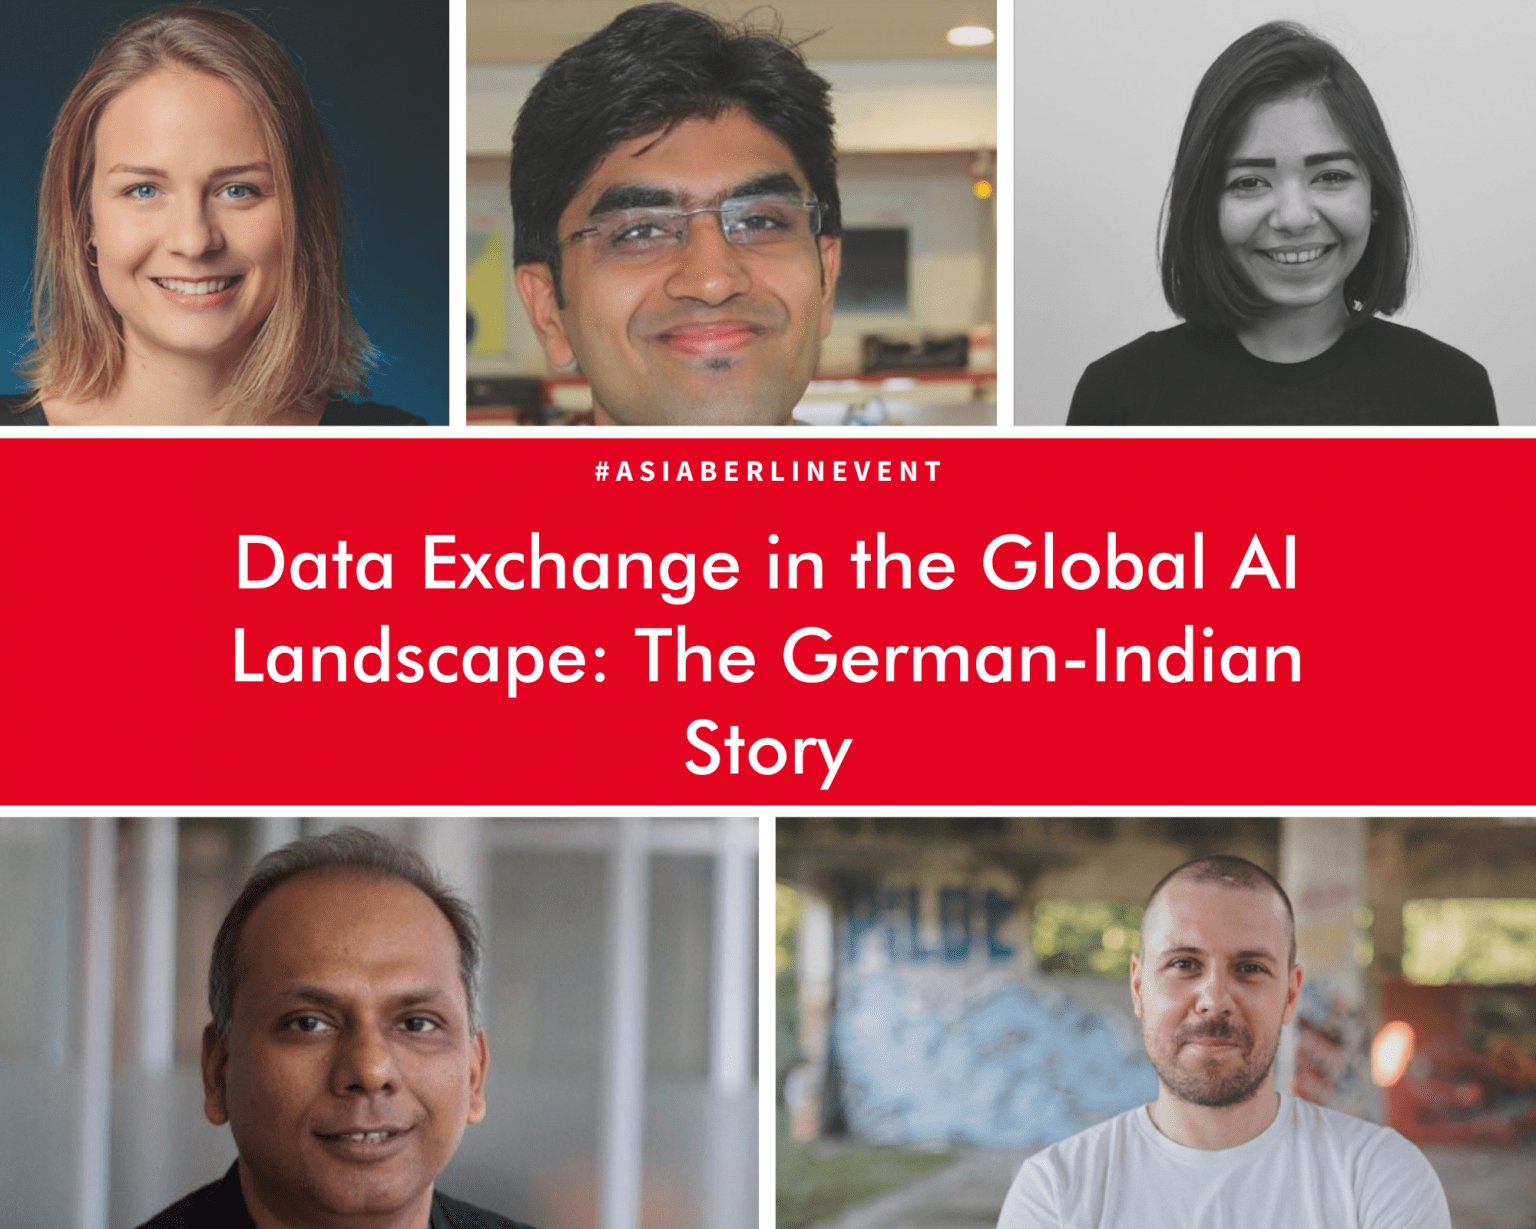 AsiaBerlin Event Recap: High on AI? Data Exchange in the Global AI Landscape: The German Indian Story